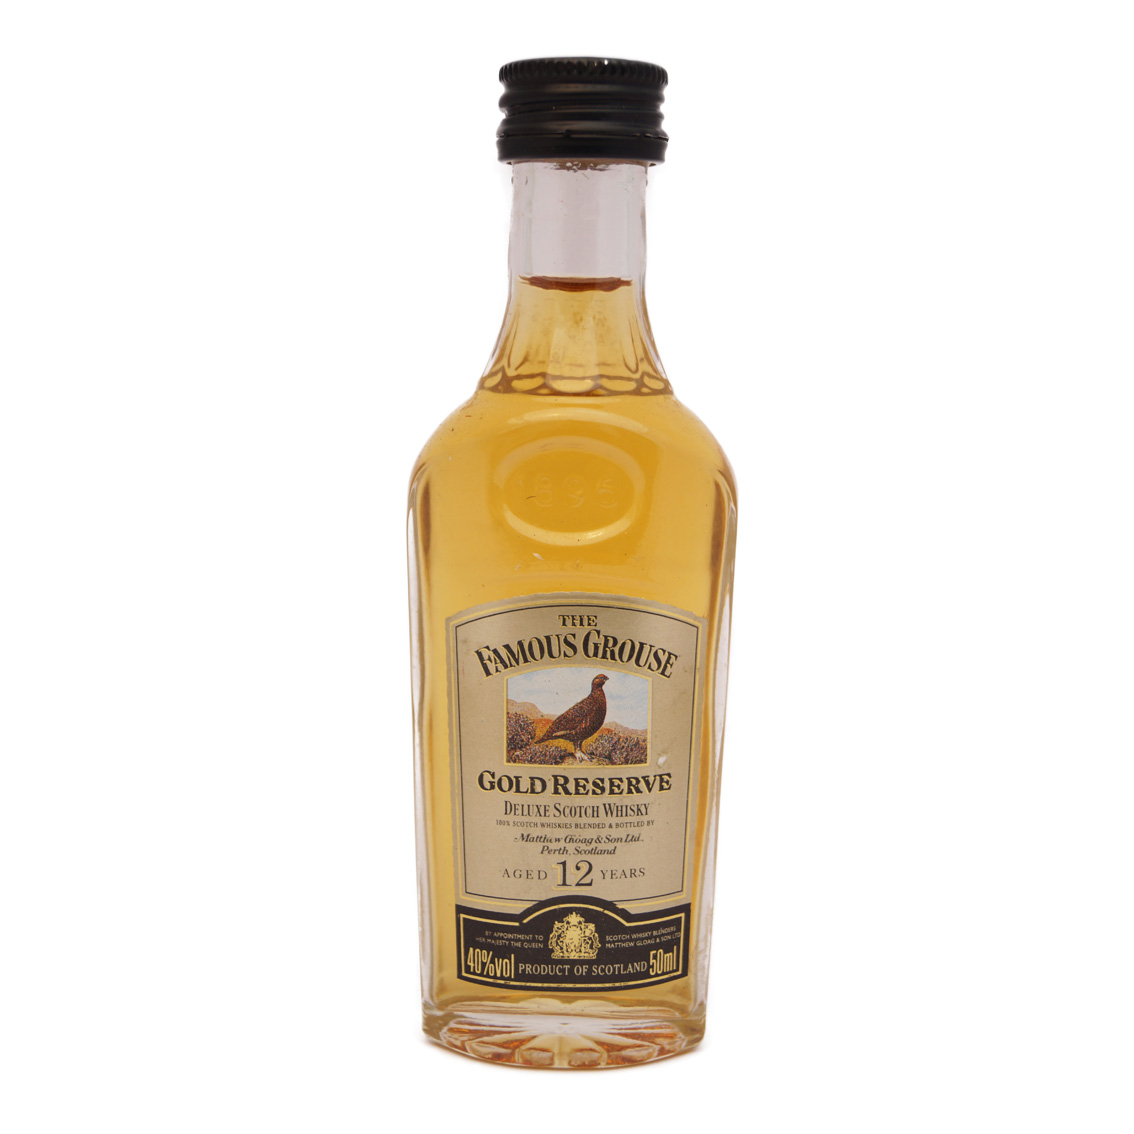 WHISKY-FAMOUS-GROUSE-GOLD-RESERV-DLSW-12-YO